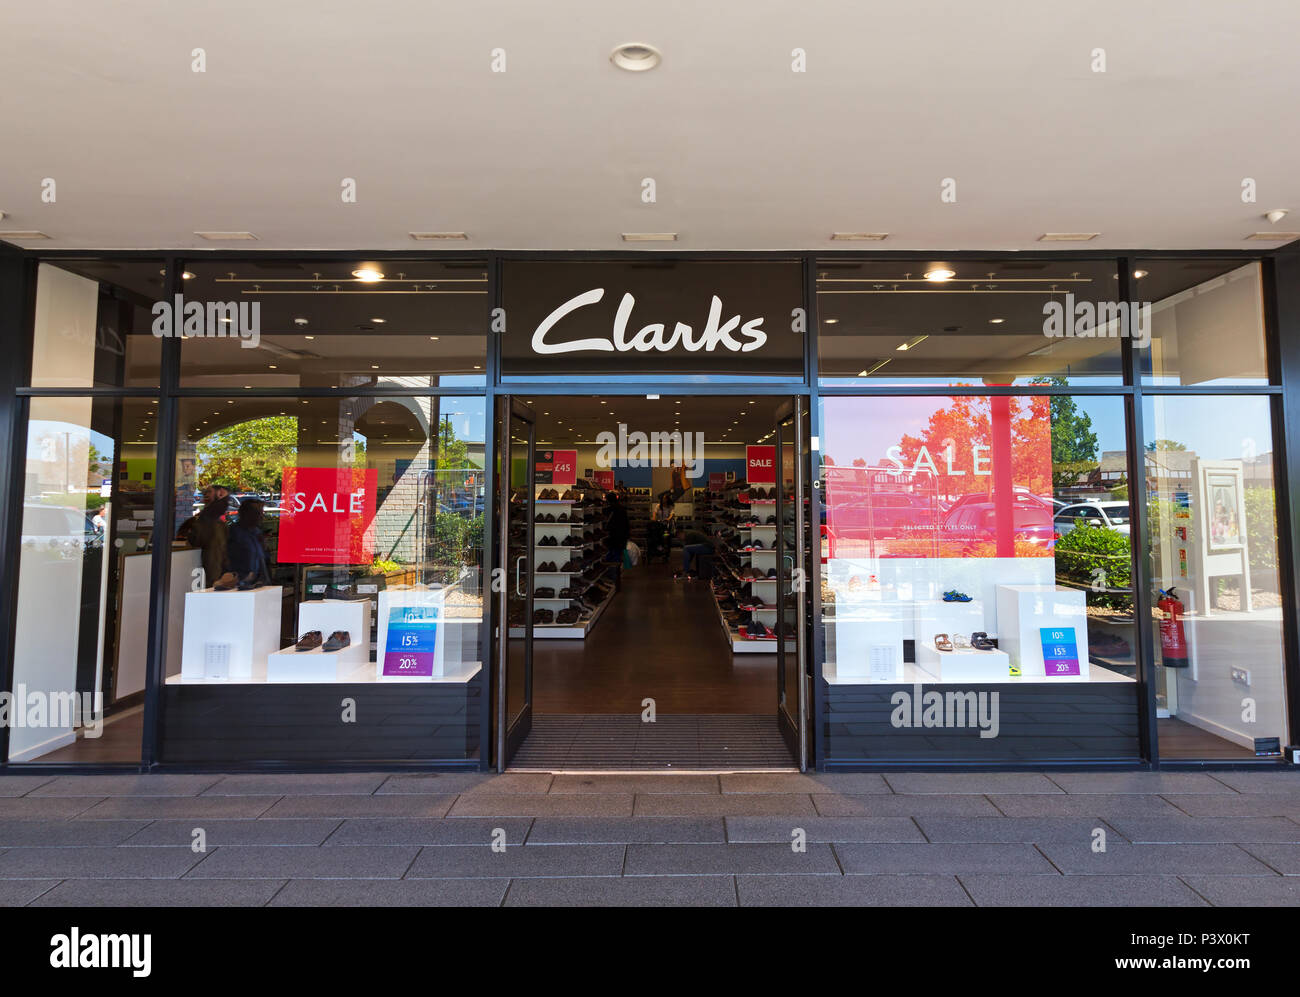 d77638ecbbf Shop frontage of the Clarks store at the Cheshire Oaks Designer Outlet,  Ellesmere Port Cheshire